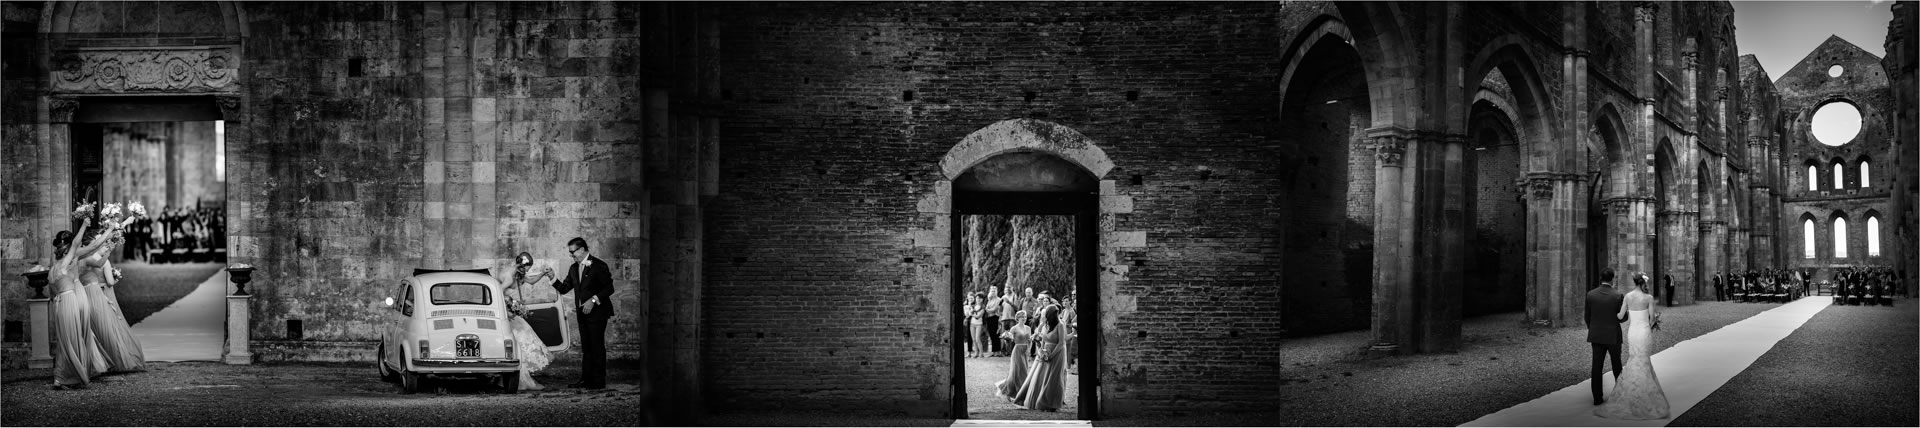 - 18 :: Wedding at Borgo Santo Pietro // San Galgano // WPPI 2018 // You look like a movie :: Luxury wedding photography - 17 ::  - 18